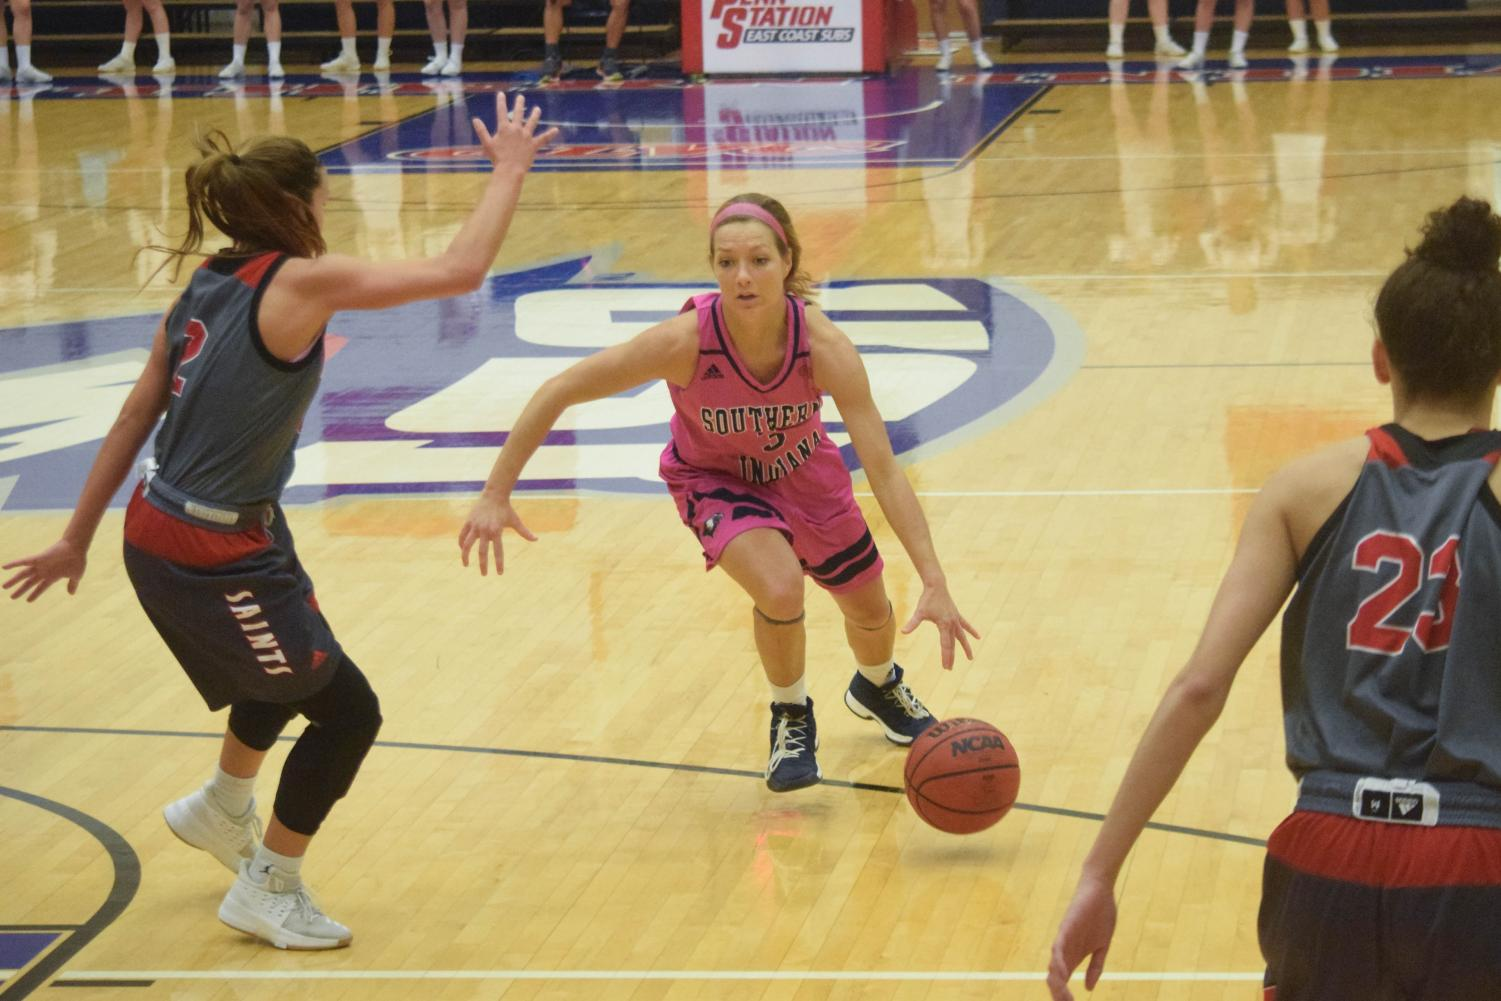 Randa+Harshbarger%2C+senior+guard%2C+attacks+the+basket+against+a+Maryville+player+Thursday+night+at+the+PAC.